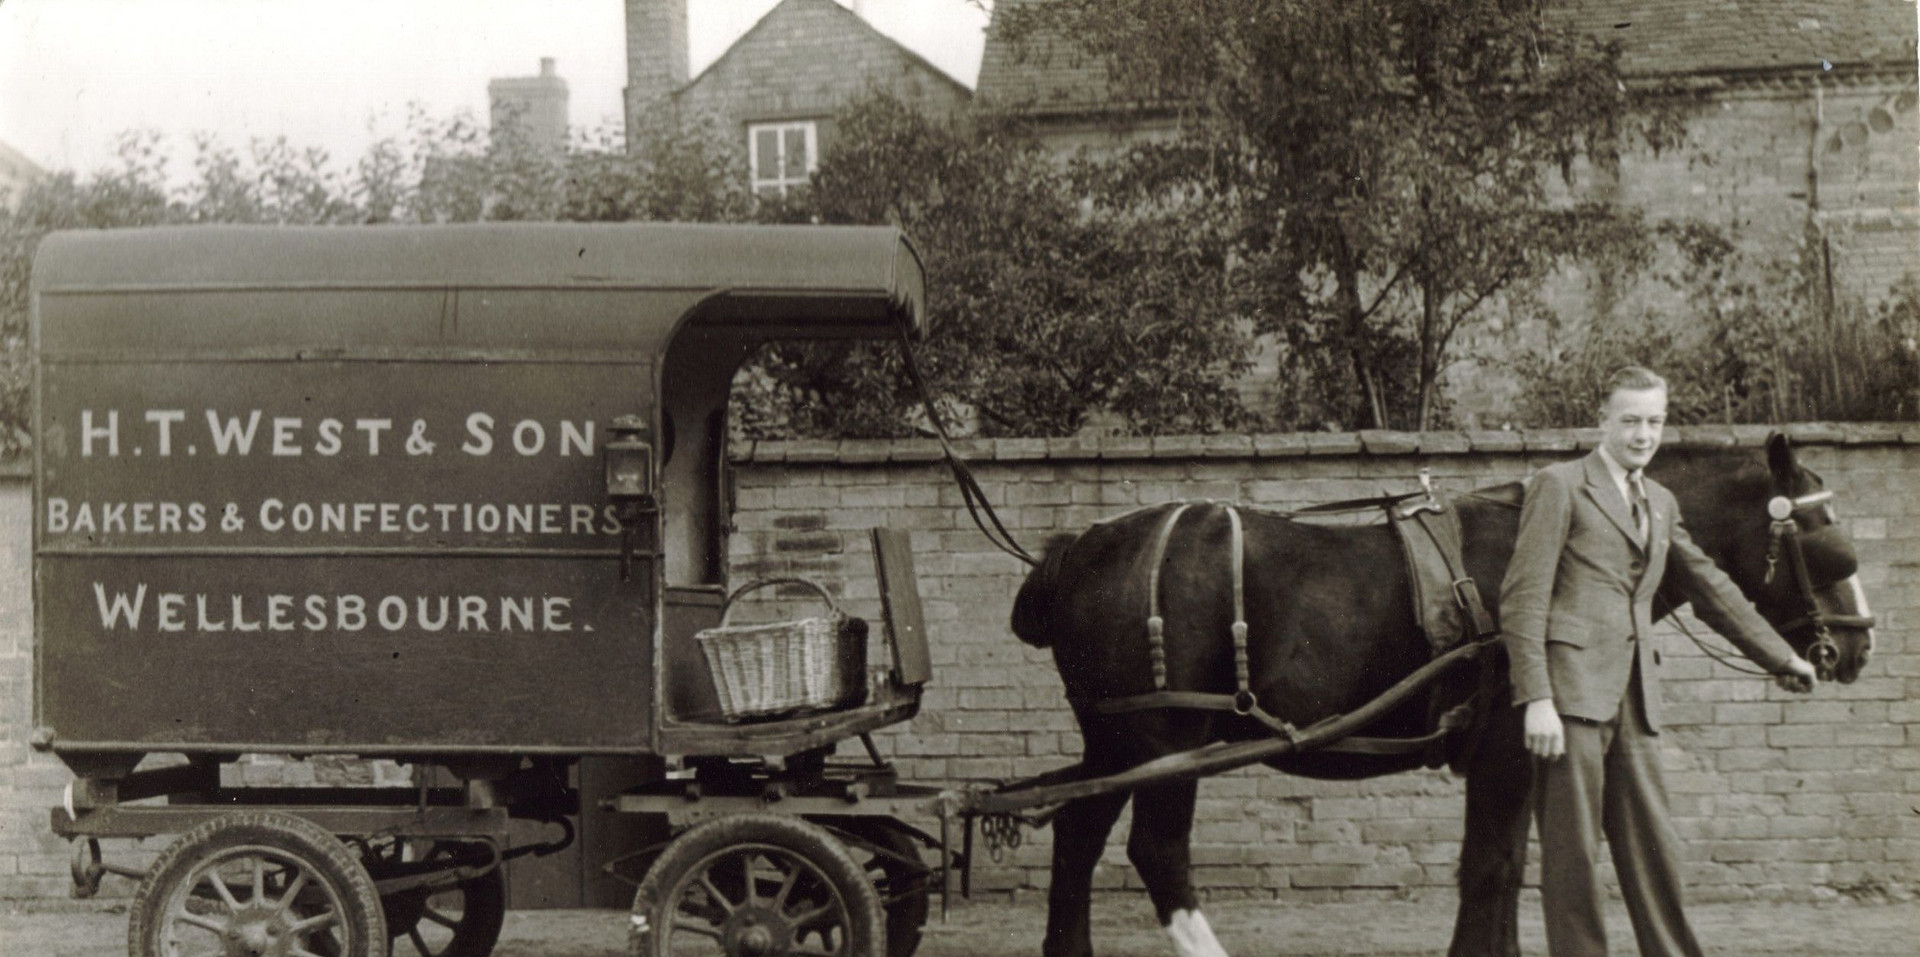 The H.T Wests & Sons Horse and Cart